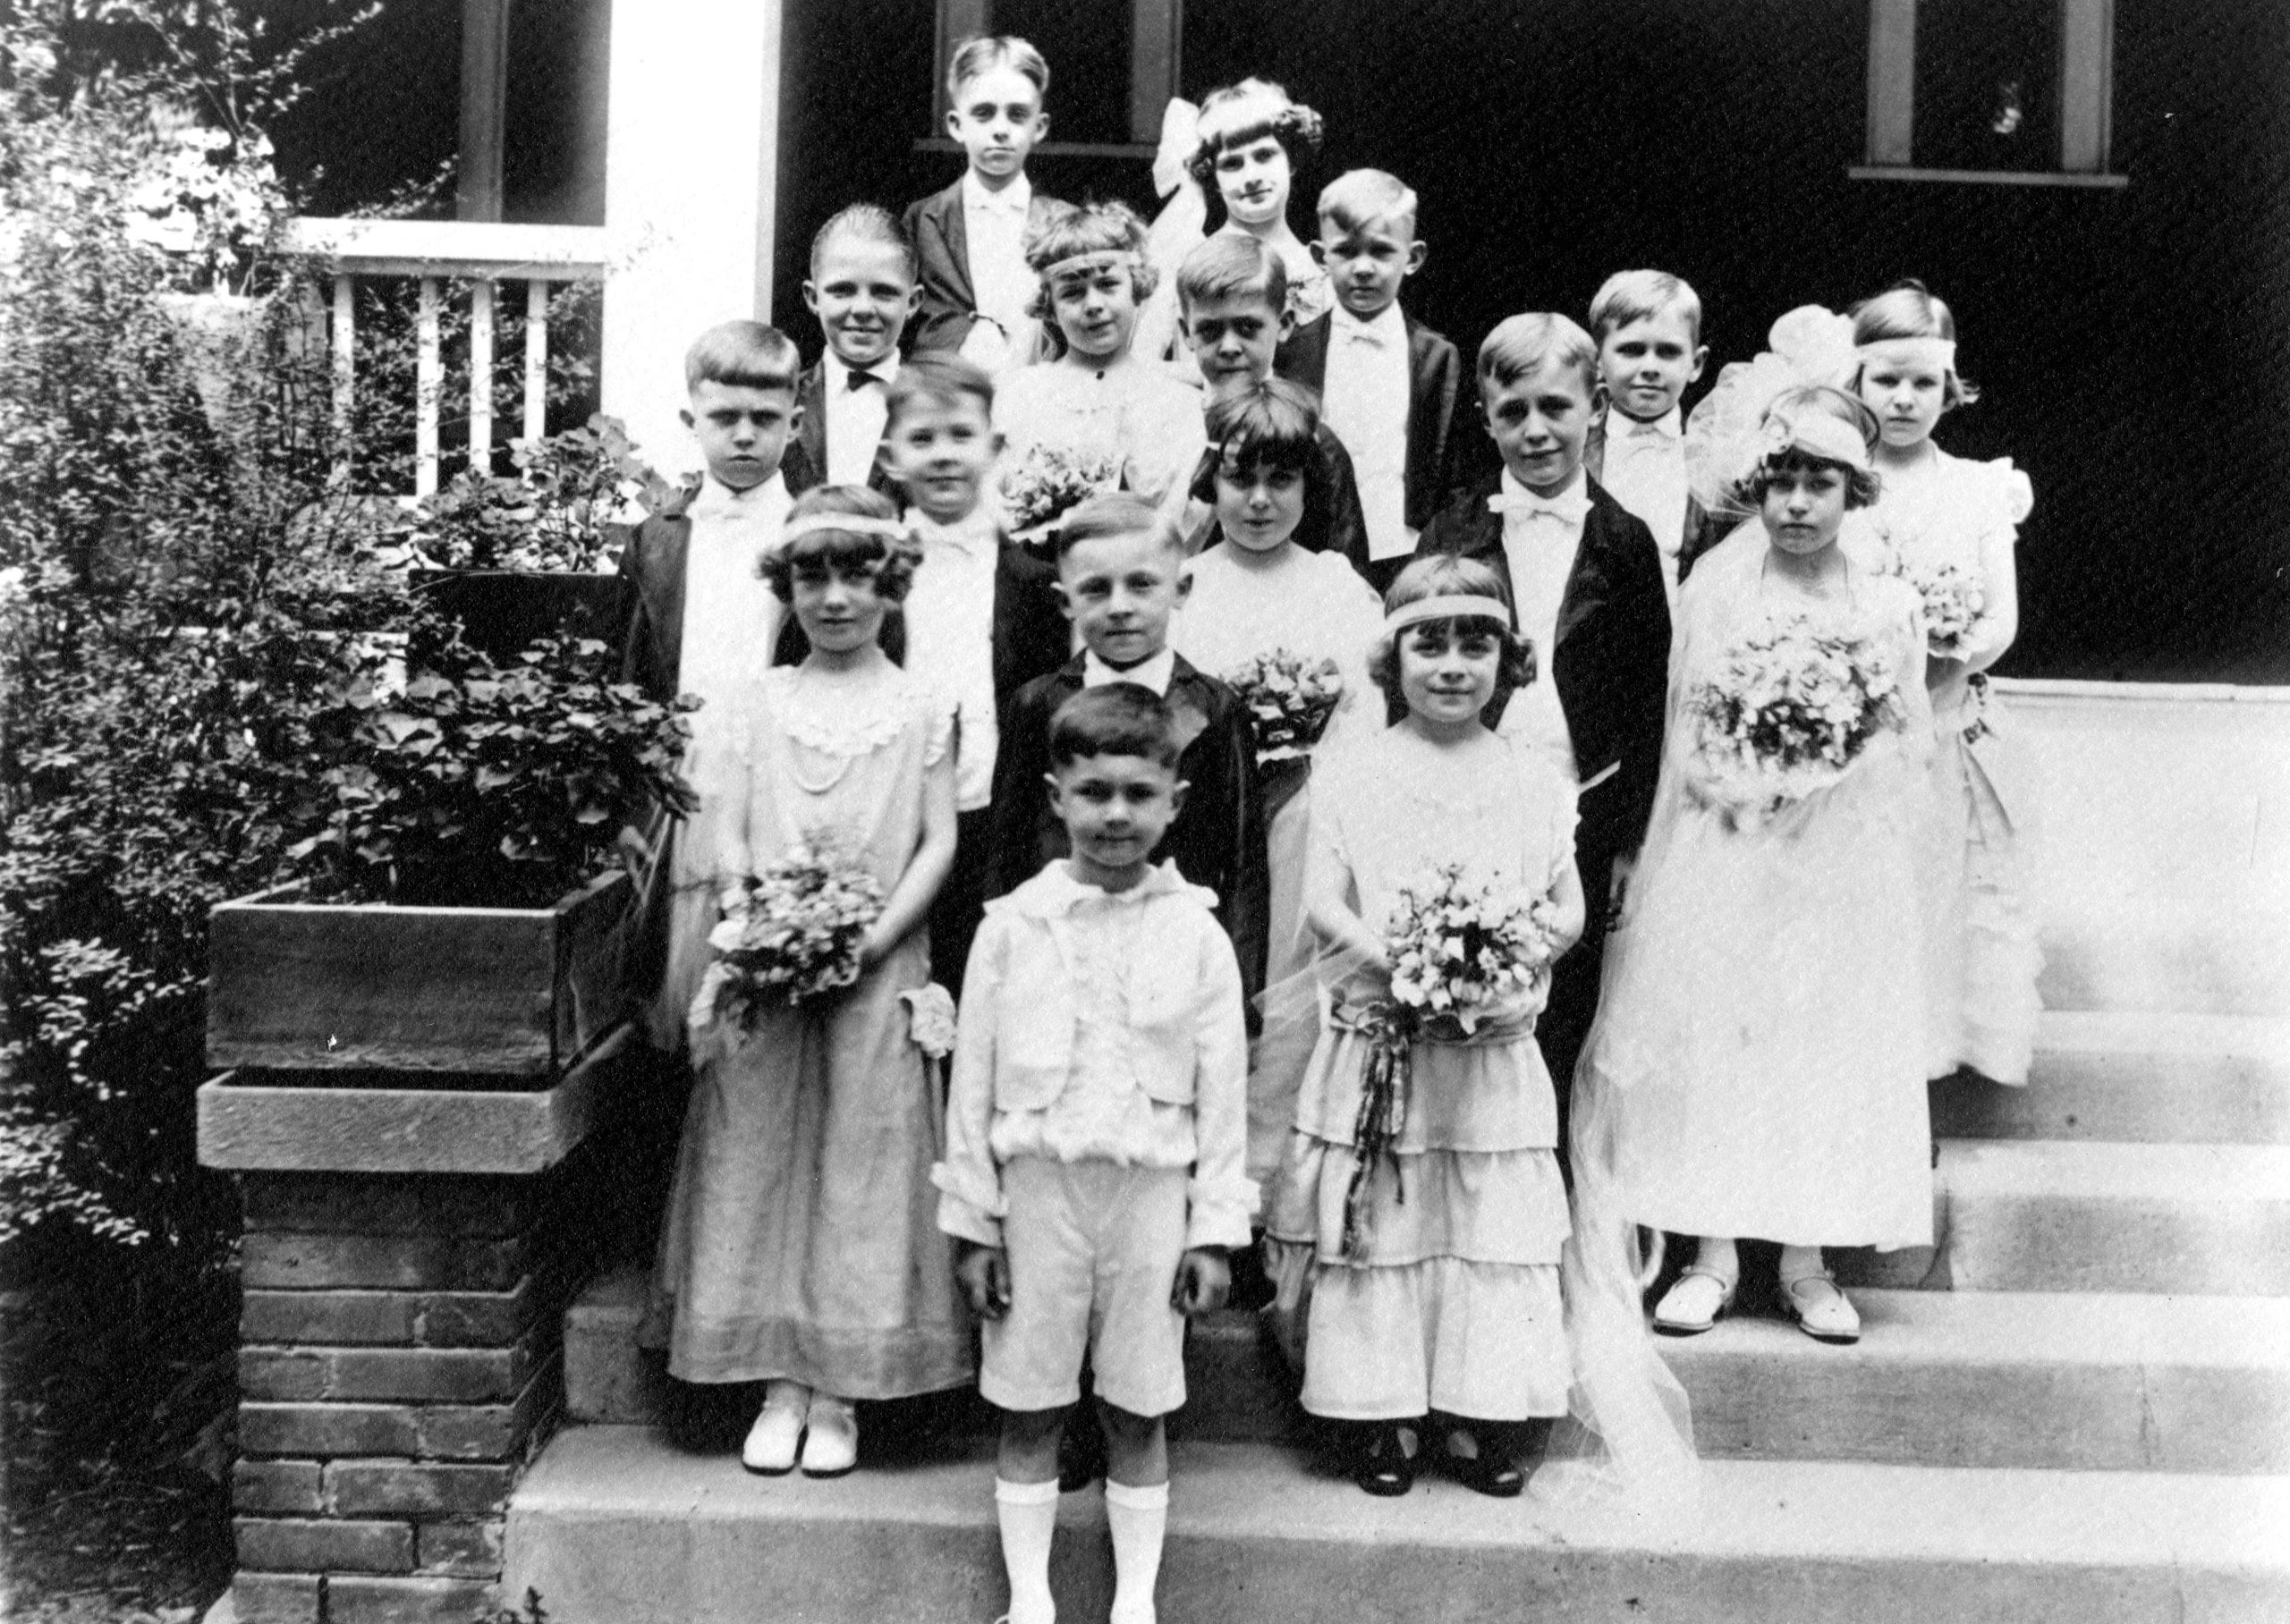 1923 – Tom Thumb Wedding